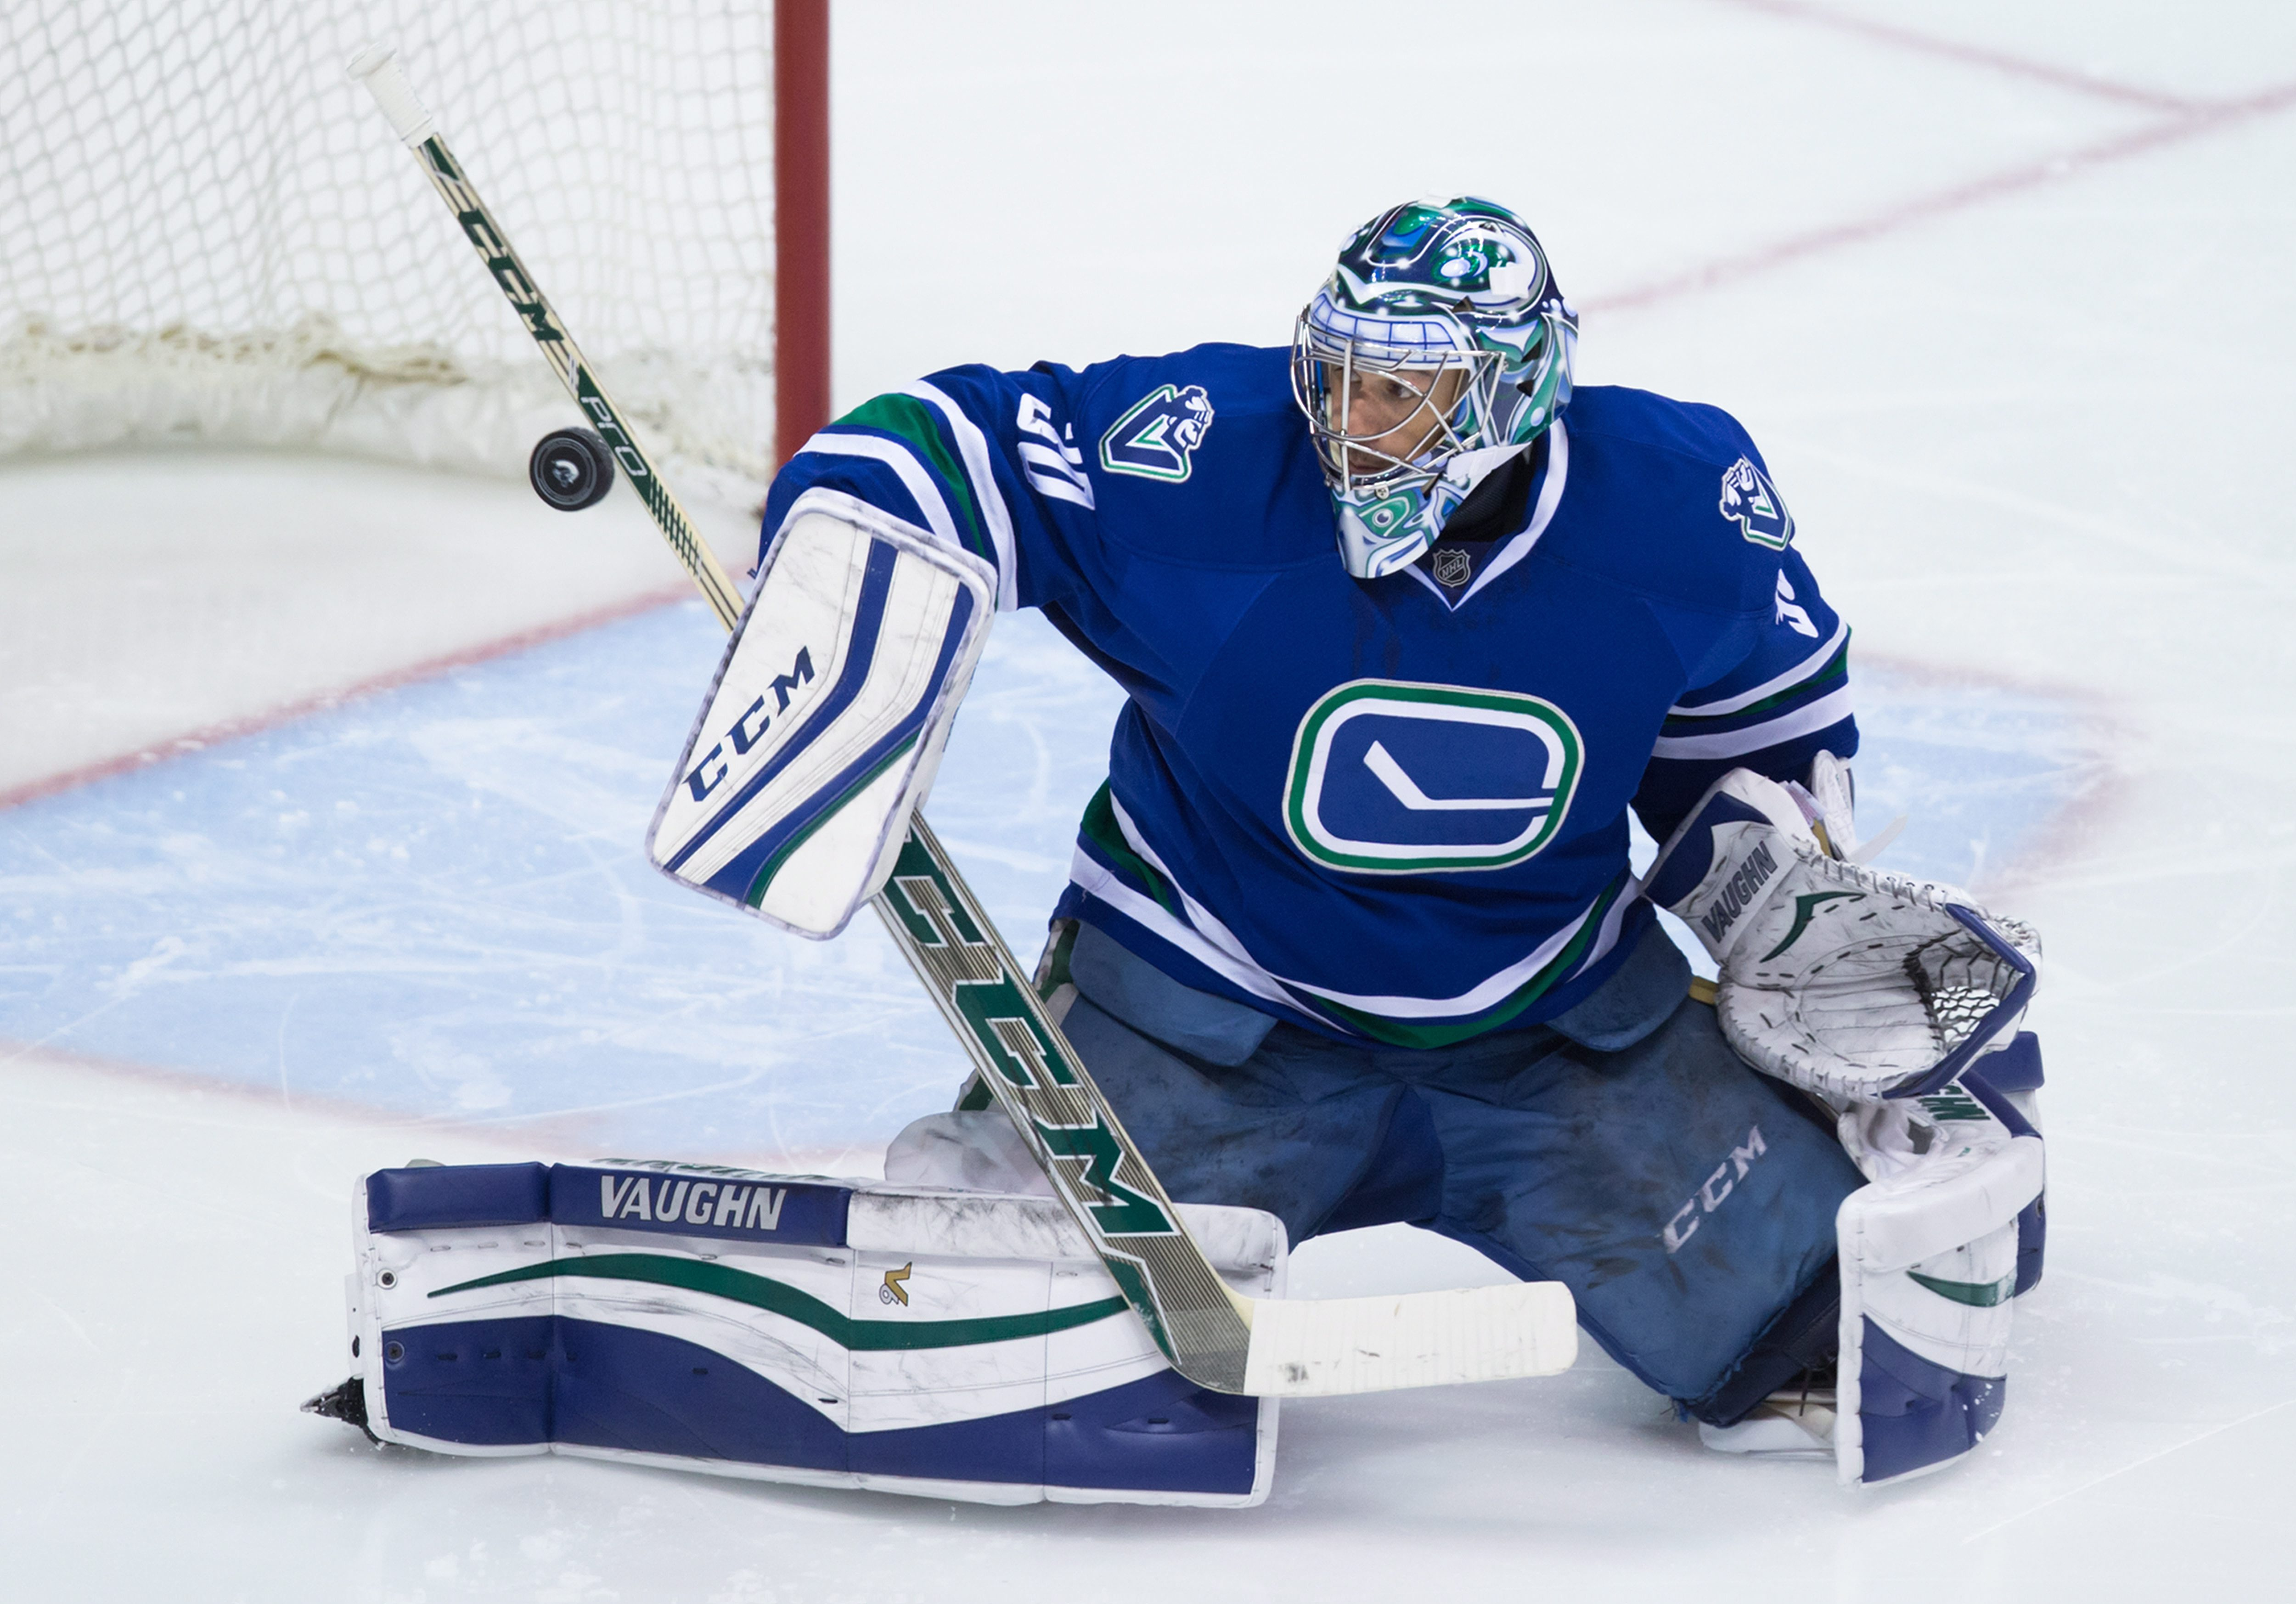 Vancouver Canucks goalie Ryan Miller makes a blocker save against the Ottawa Senators during the second period of an NHL hockey game Thursday, Feb. 25, 2016, in Vancouver, British Columbia. (Darryl Dyck/The Canadian Press via AP)